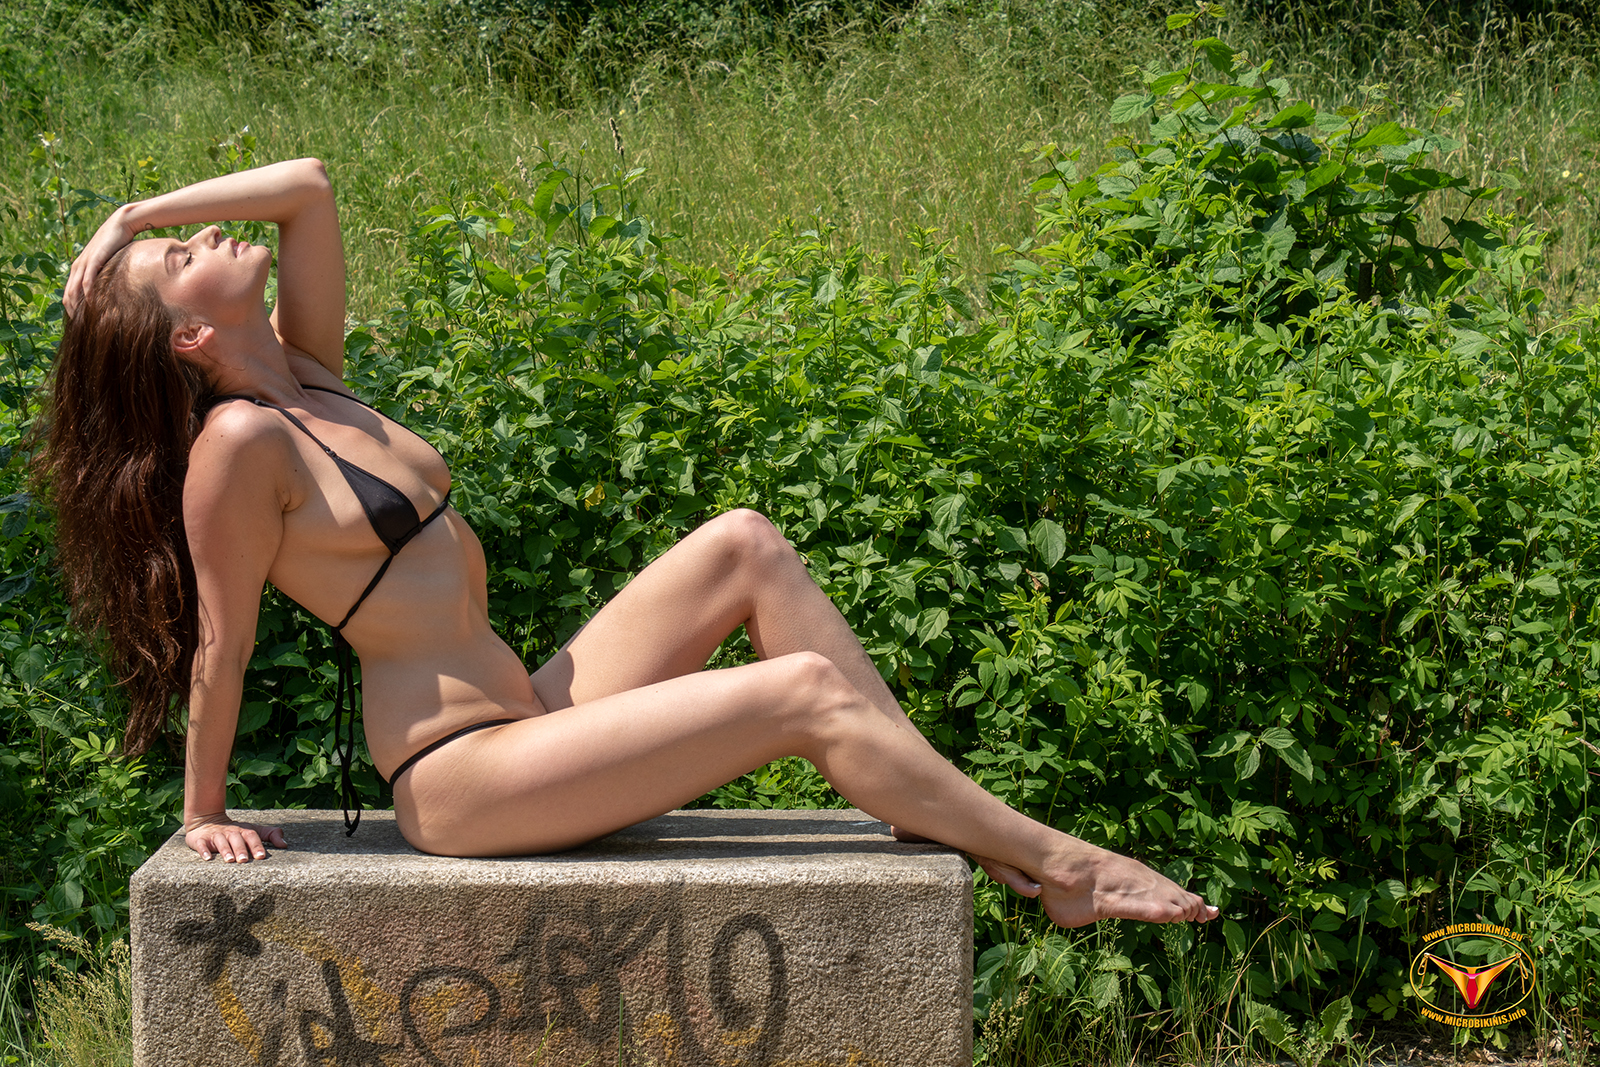 Microbikinis Bikinigirl, Micro Bikini Model Kamilka Bikinigirl from the Czech Republic